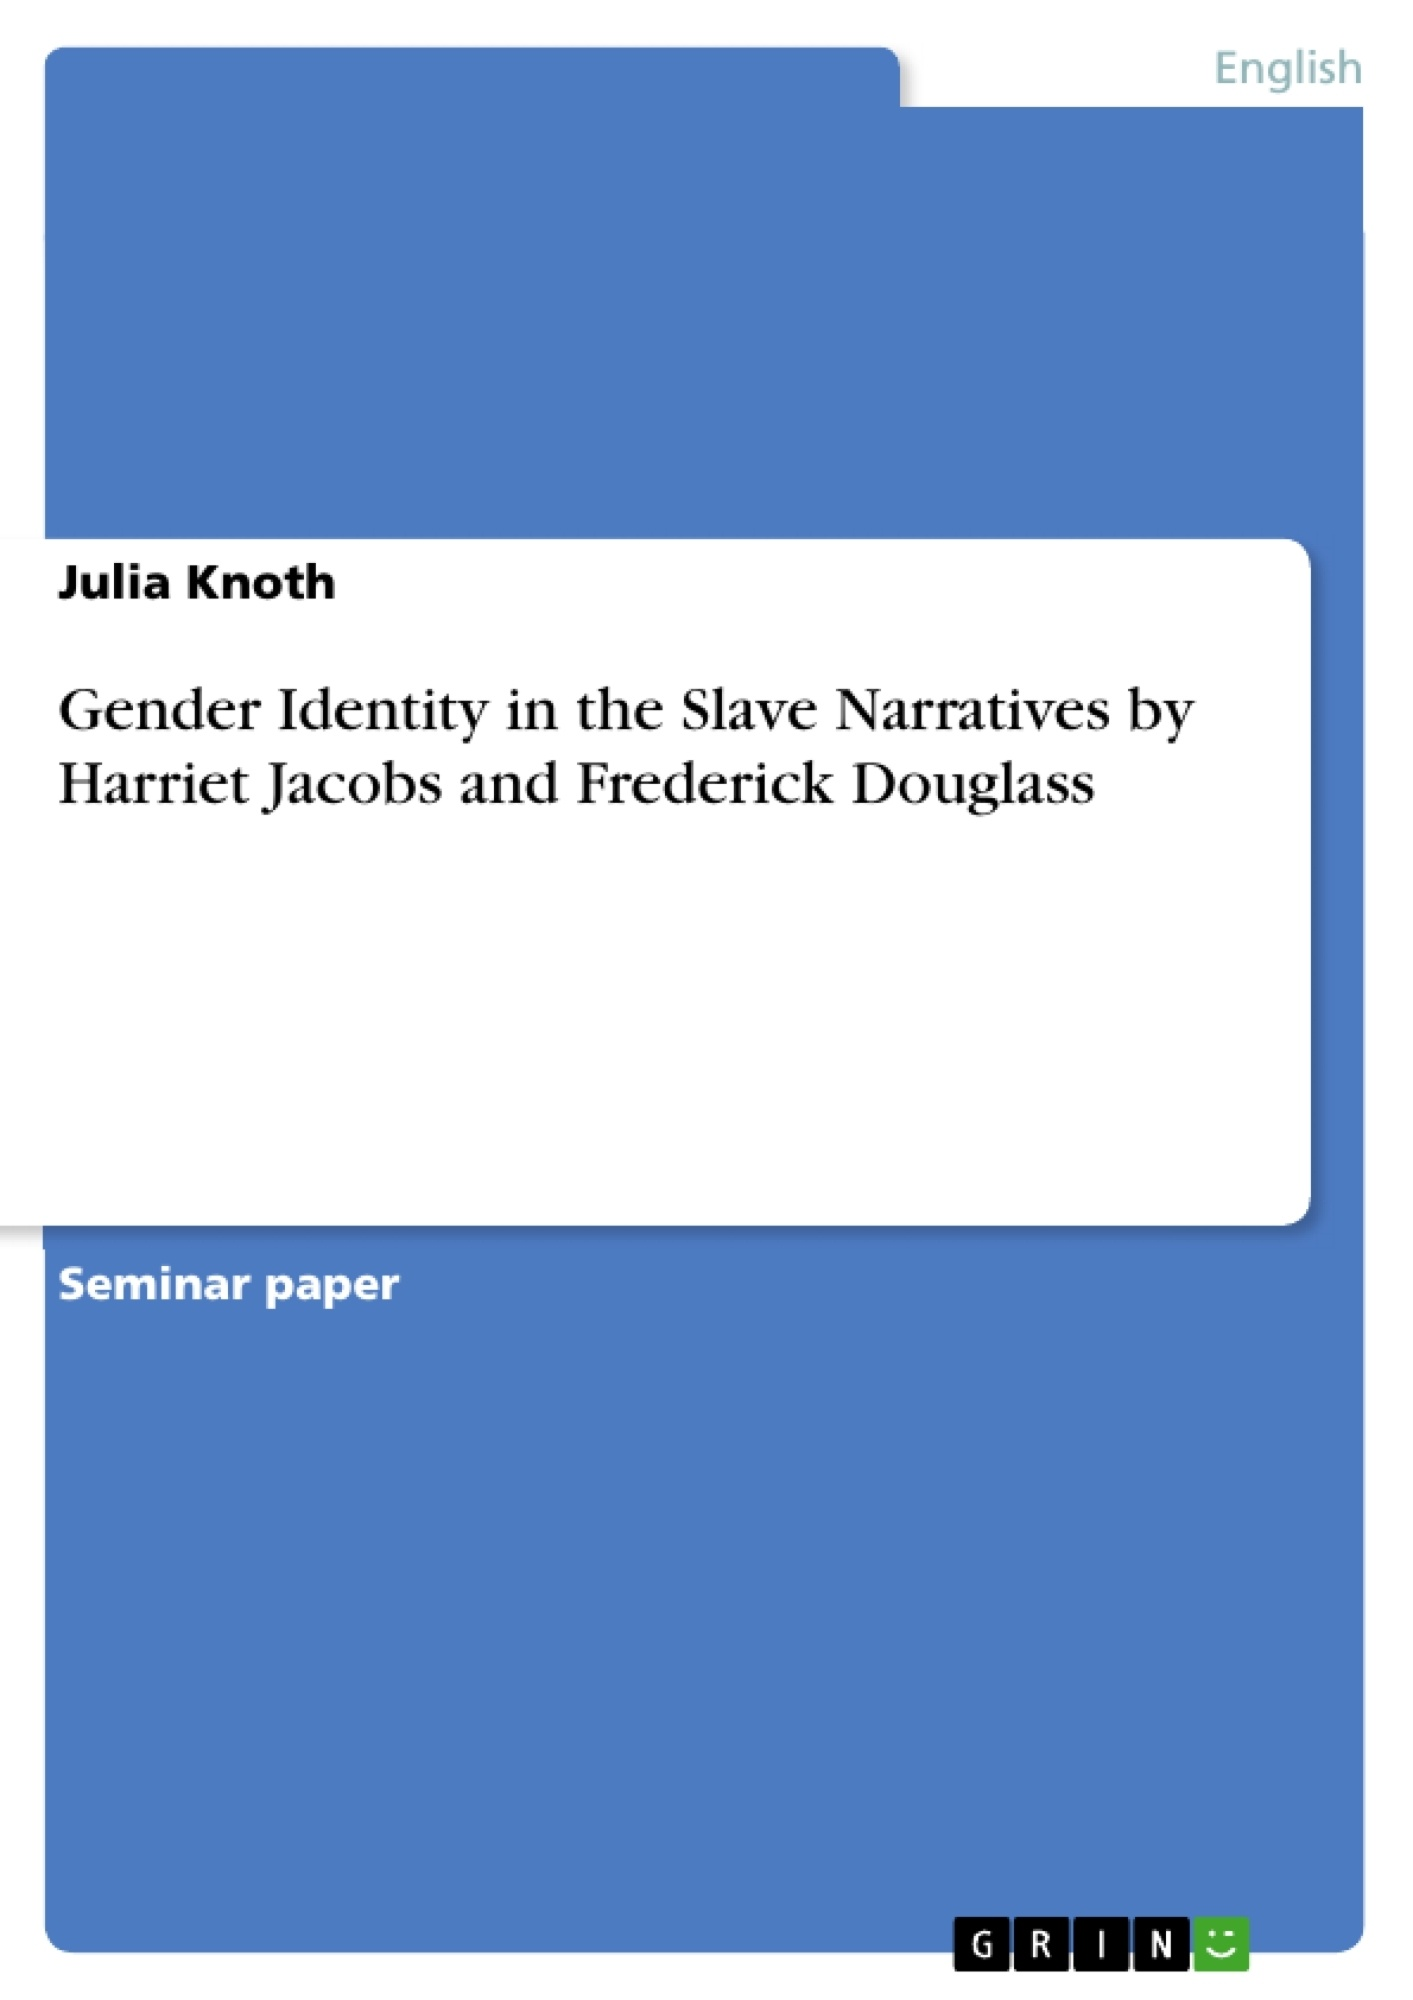 Title: Gender Identity in the Slave Narratives by Harriet Jacobs and Frederick Douglass